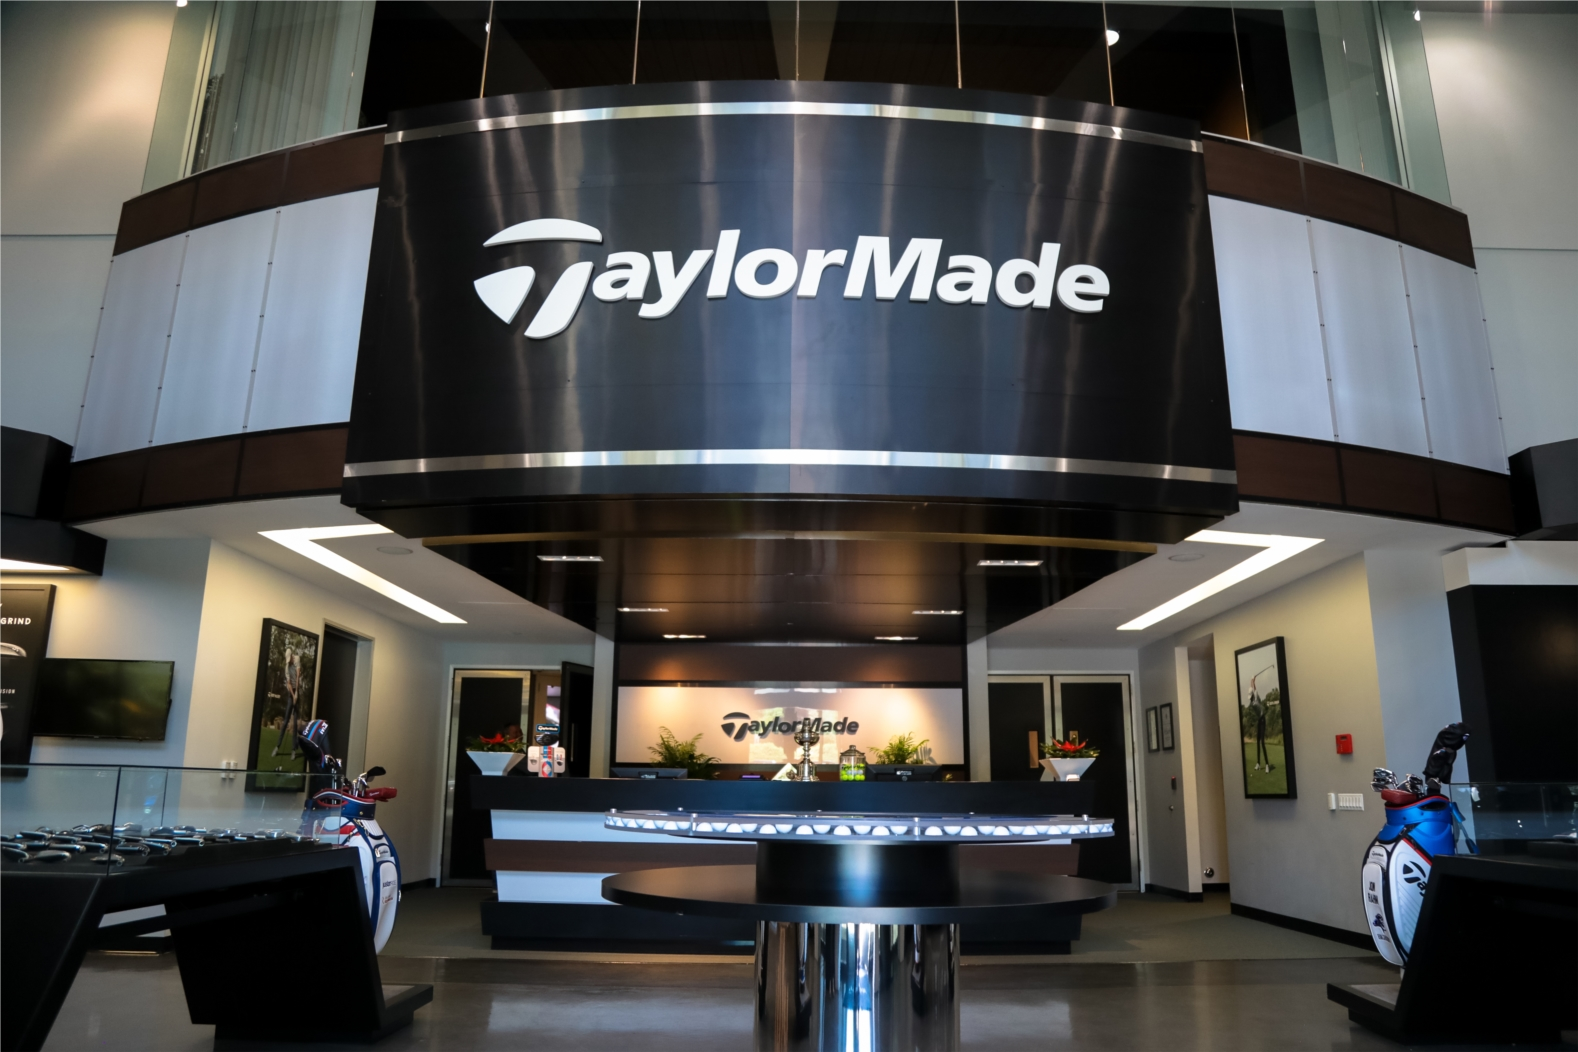 TaylorMade Golf Company Global Headquarters in Carlsbad.